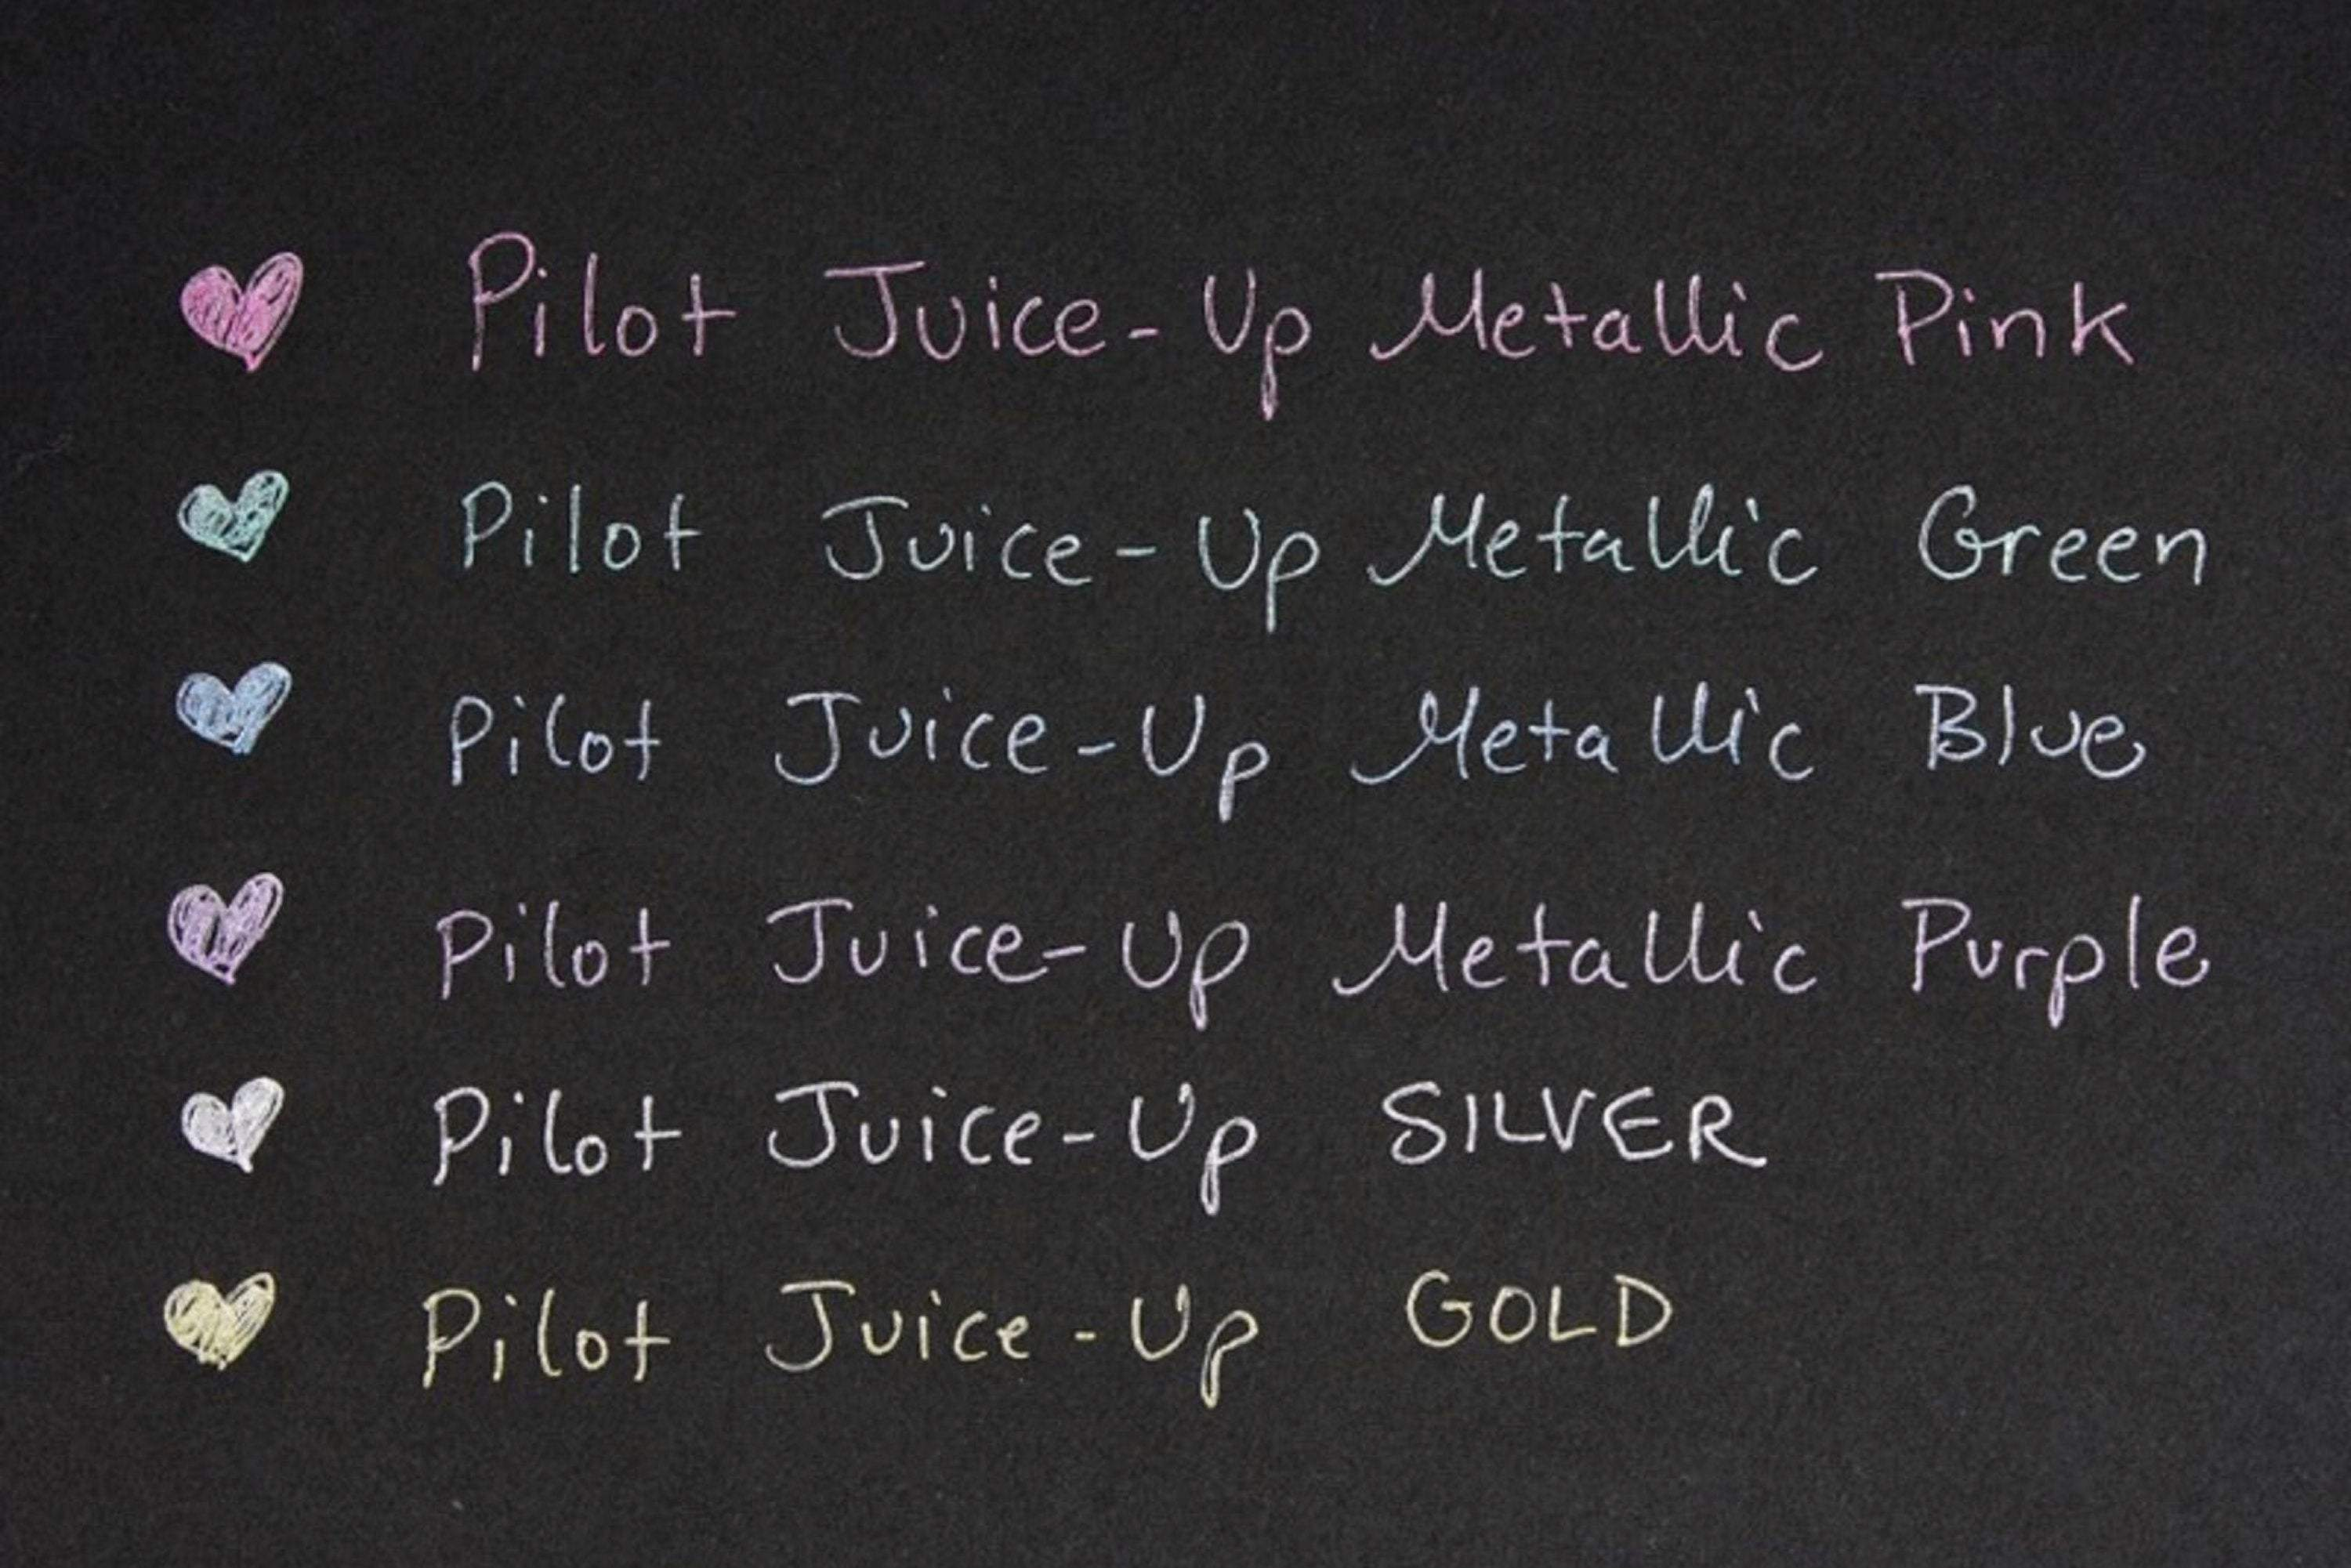 METALLIC Pilot Juice Up Single Pen or Full Set Pilot Gel Pen | 0.4mm - The Stationery Life!